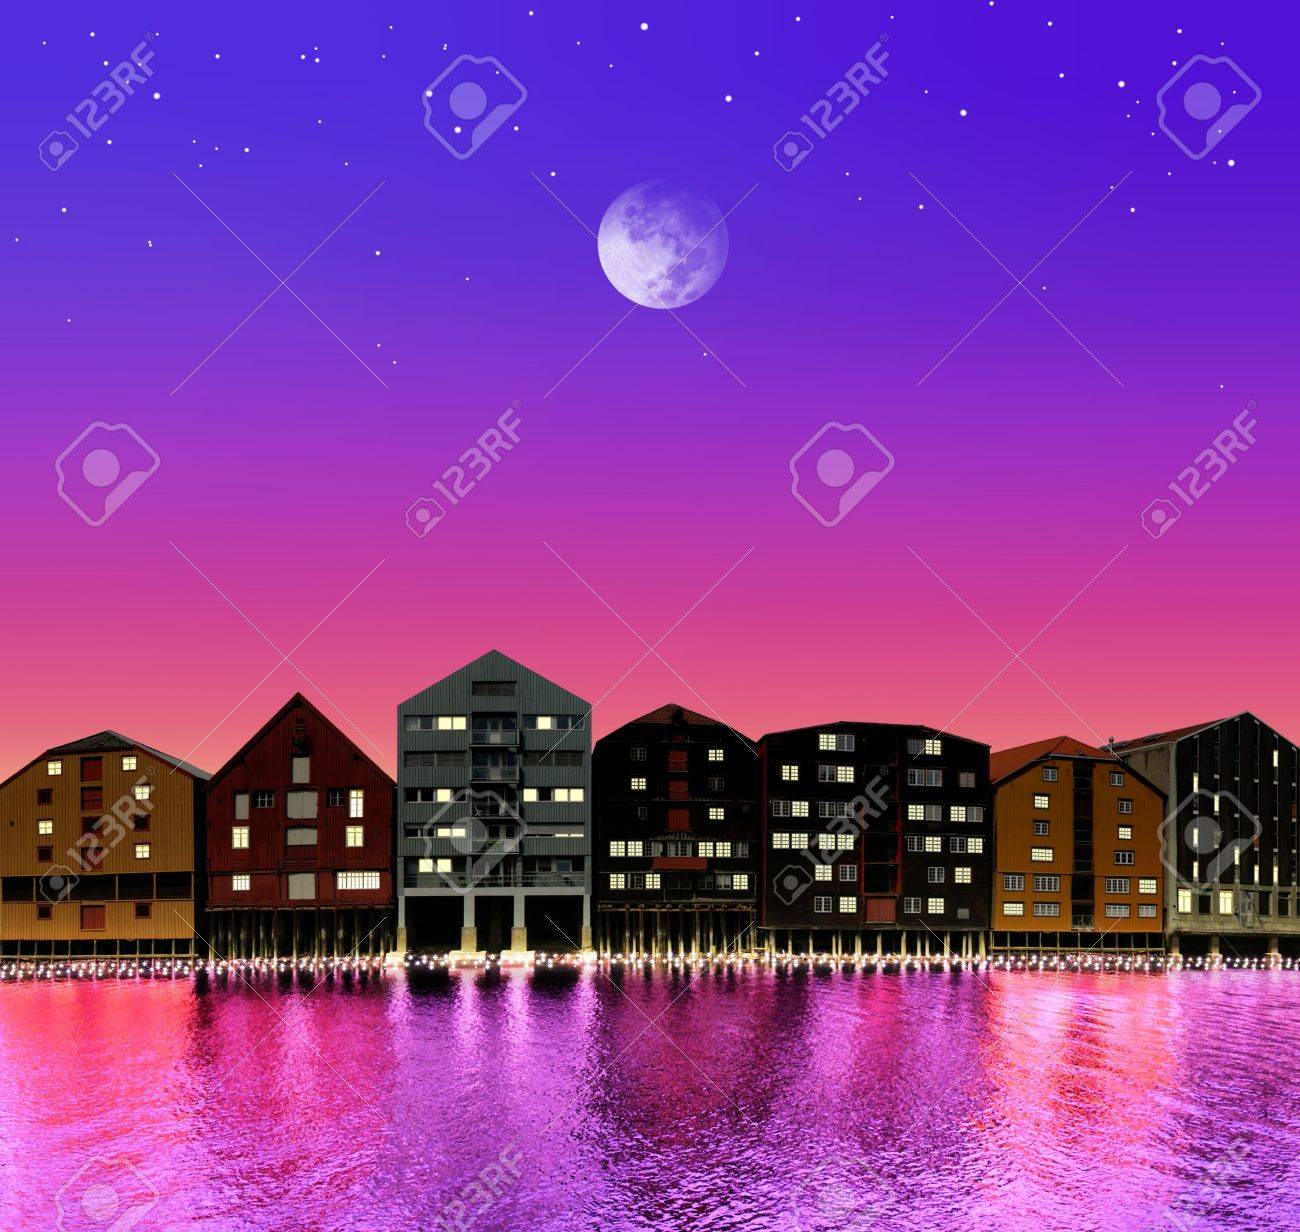 silhouette of fairytale town on night sky in the bright of the moon Stock Photo - 7885143